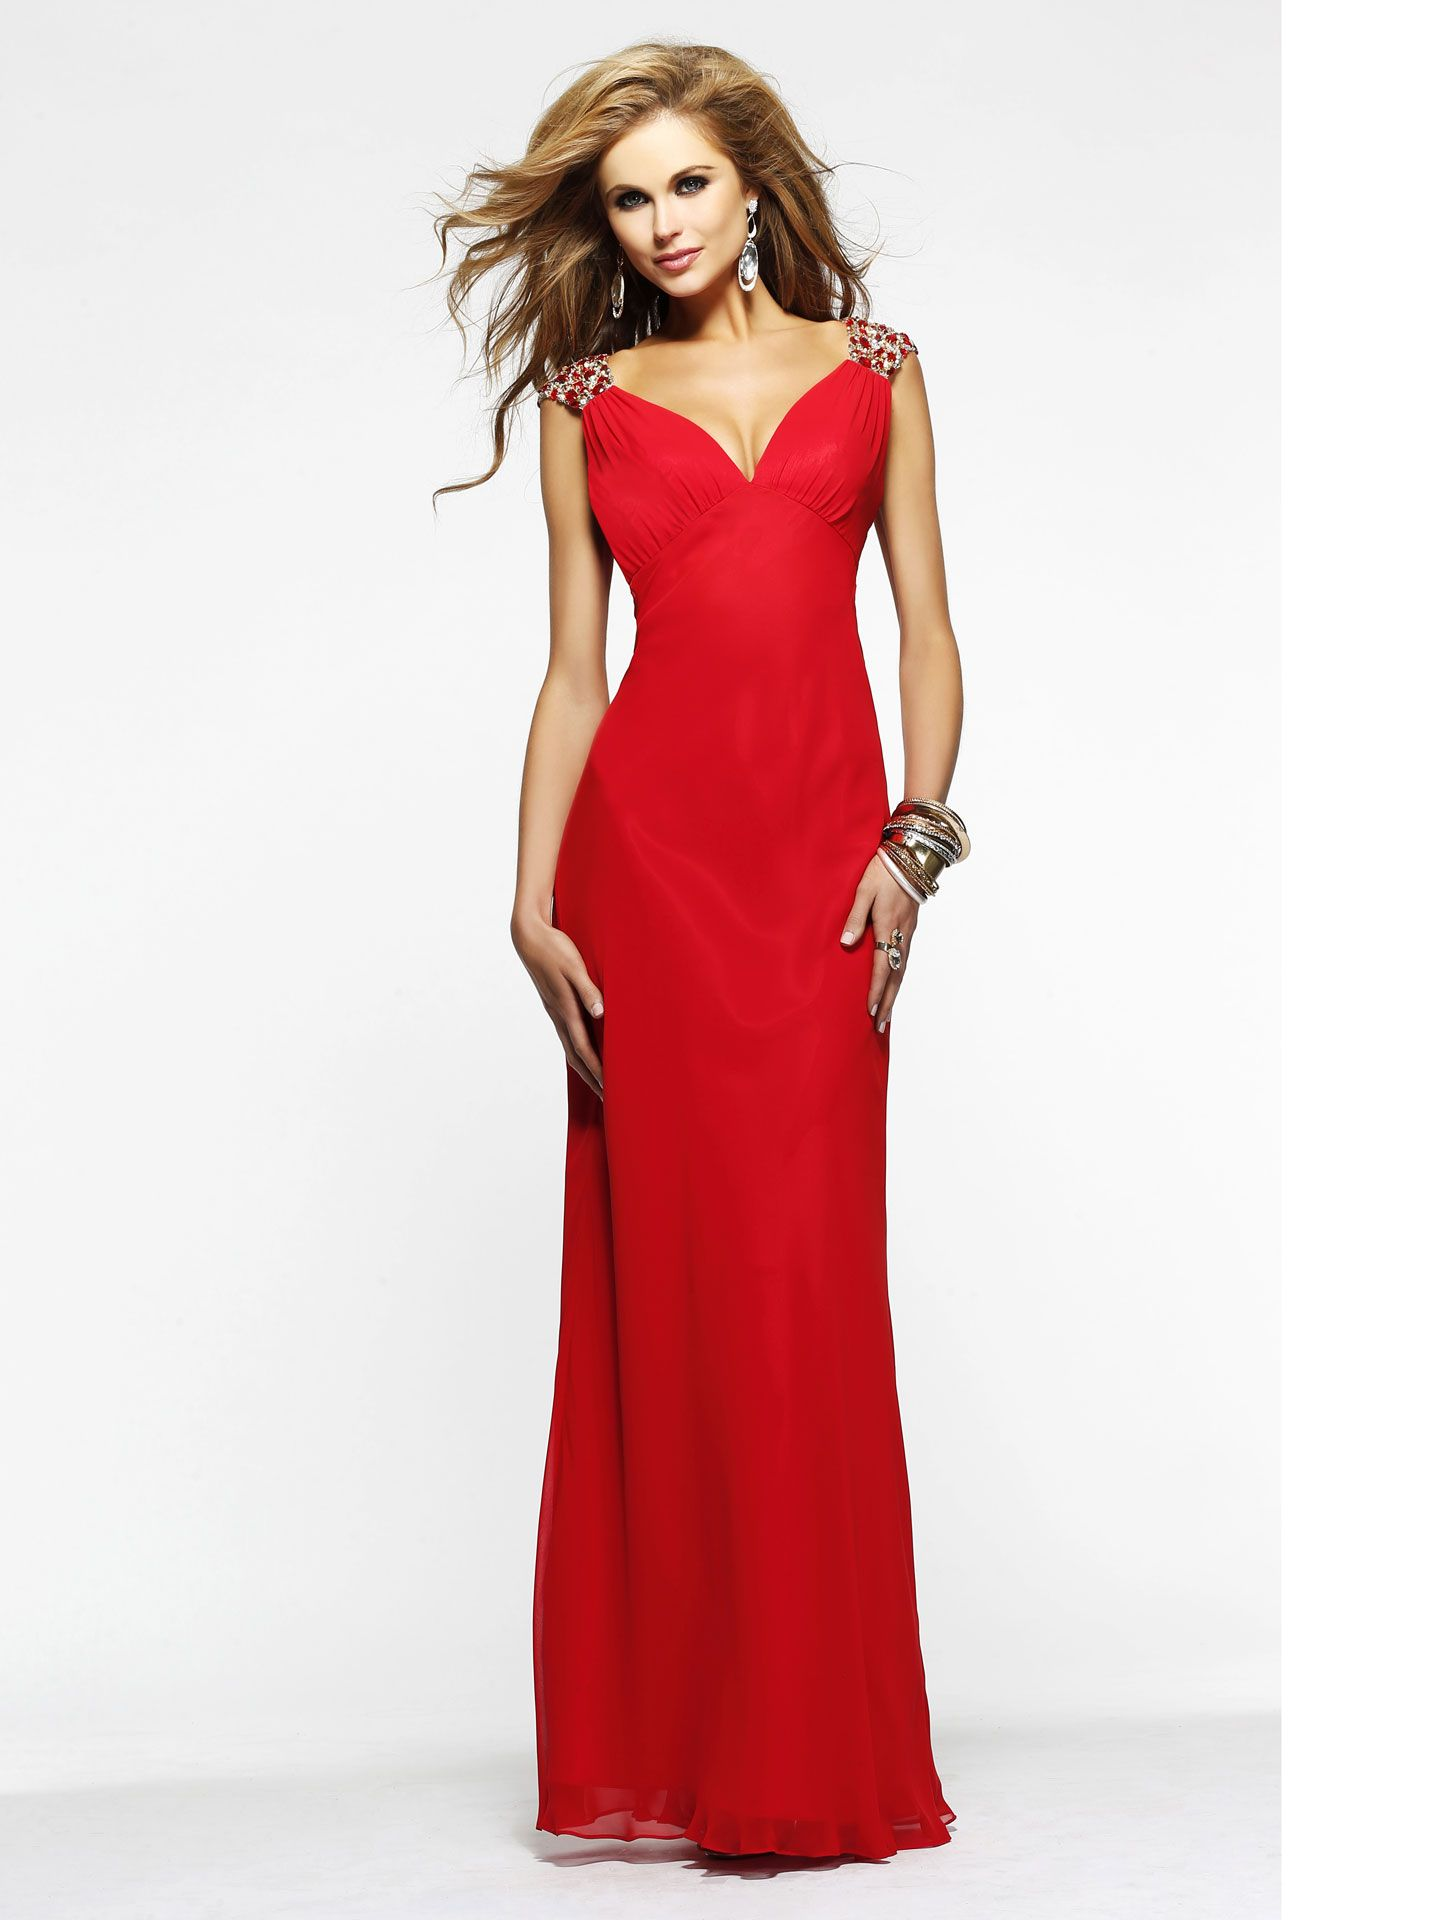 red prom dresses inspired by the dancing lady emoji prom